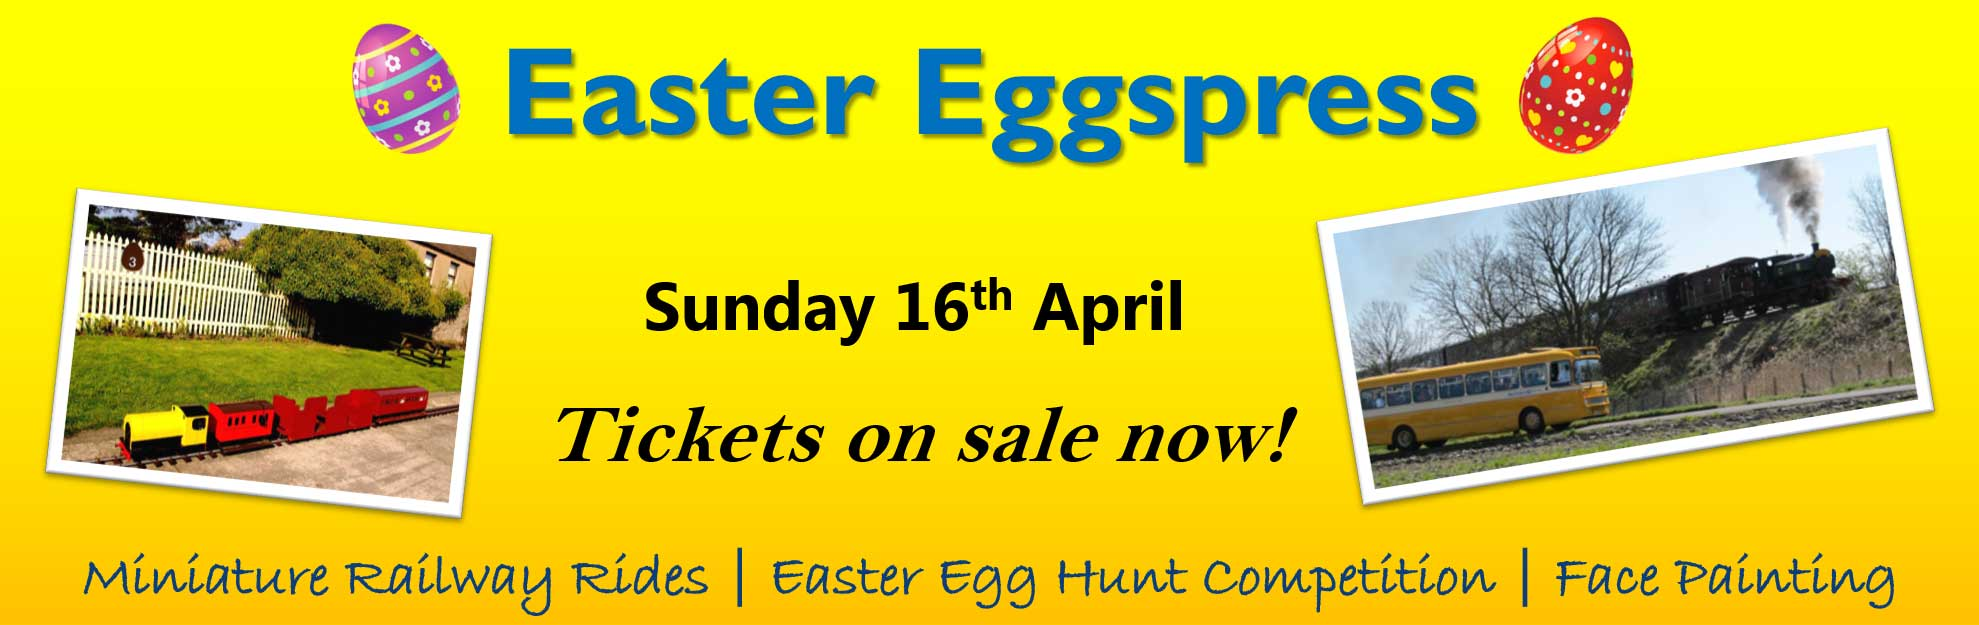 Easter-Eggspress-Tickets-On